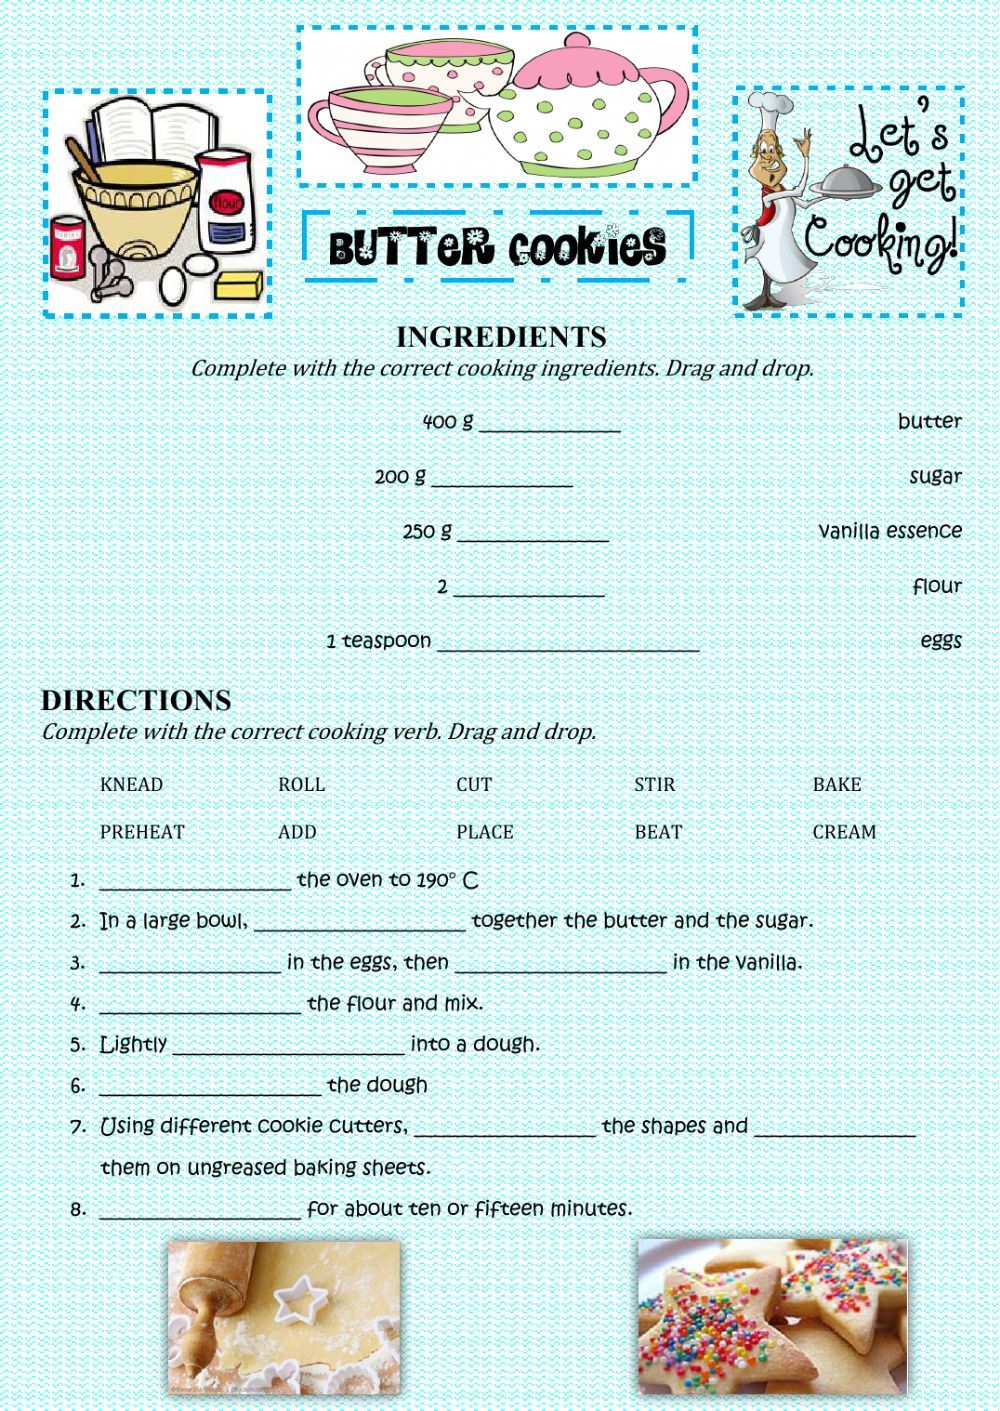 Recipes Interactive And Downloadable Worksheet You Can Do The Exercises Online Or Download The Wor English Worksheets For Kids Culinary Classes Butter Cookies [ 1411 x 1000 Pixel ]